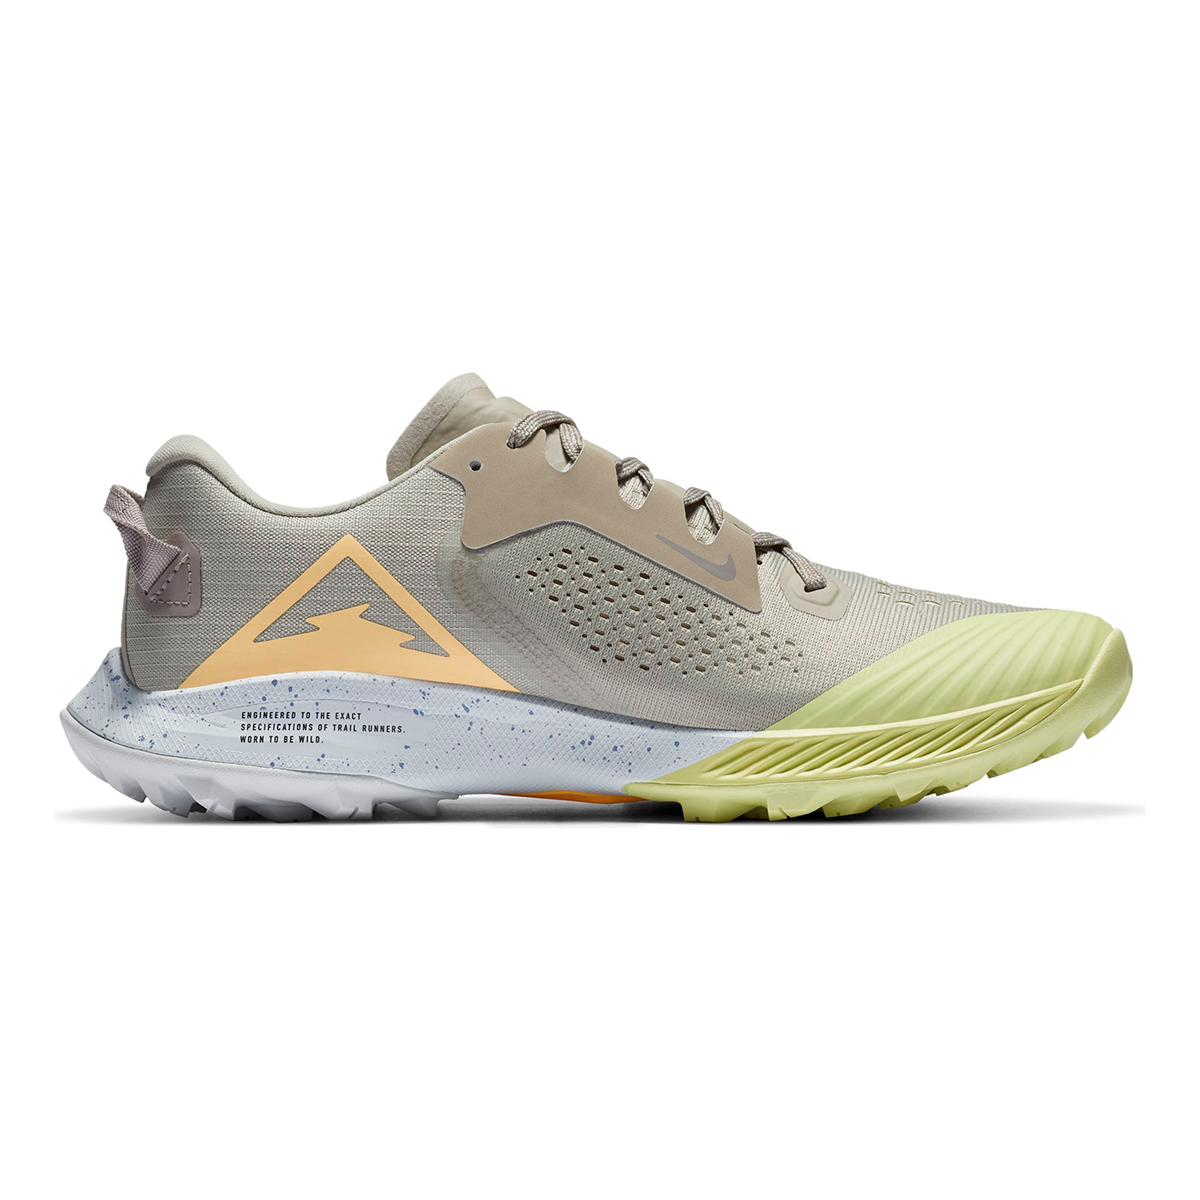 Women's Nike Terra Kiger 6 Trail Running Shoe - Color: Stone/Enigma Stone/Limelight/Melon Tint - Size: 5 - Width: Regular, Stone/Enigma Stone/Limelight/Melon Tint, large, image 2